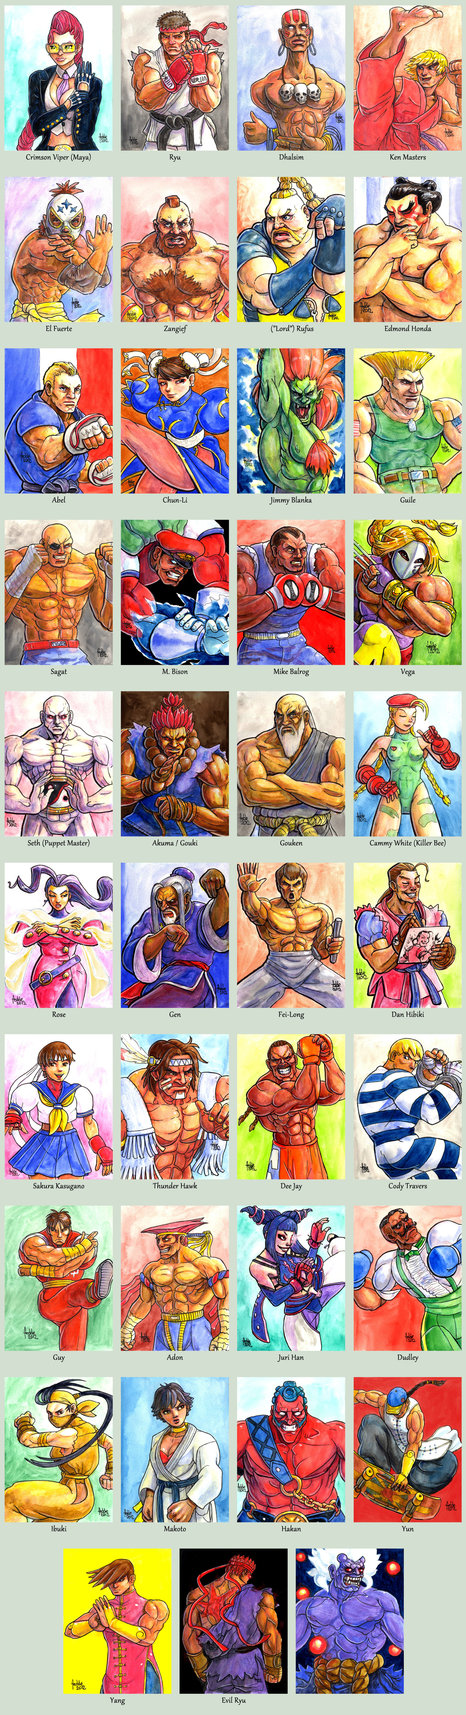 Sketchcard Street Fighter 4 Collection By Fedde On Deviantart Street Fighter Characters Street Fighter Art Ryu Street Fighter